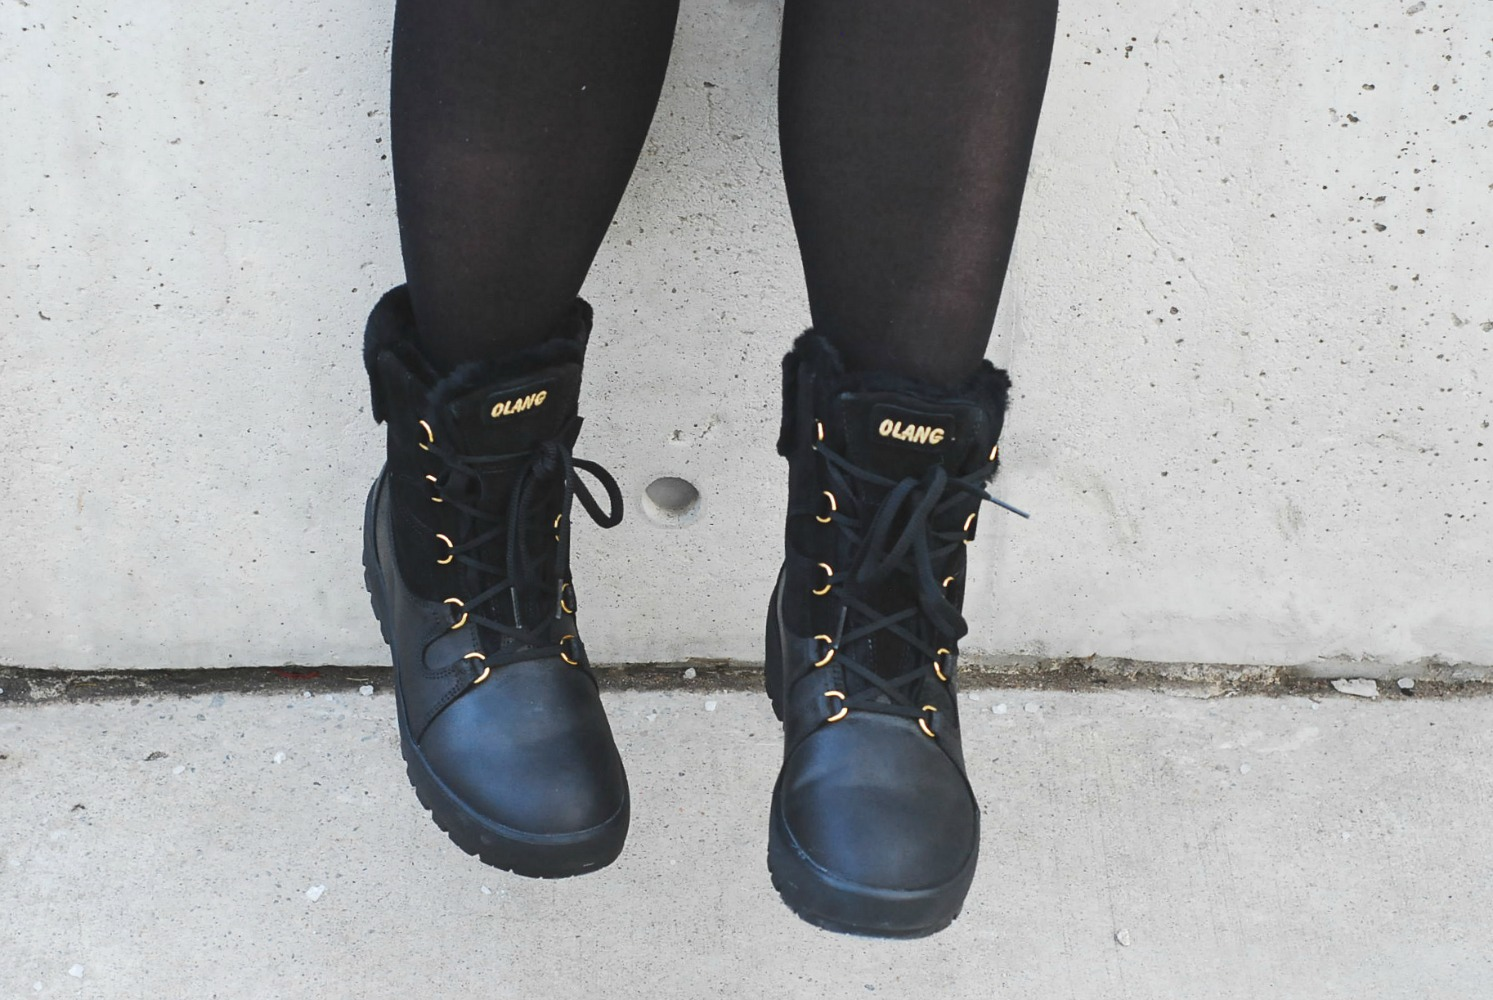 Olang Pomona Boots Review